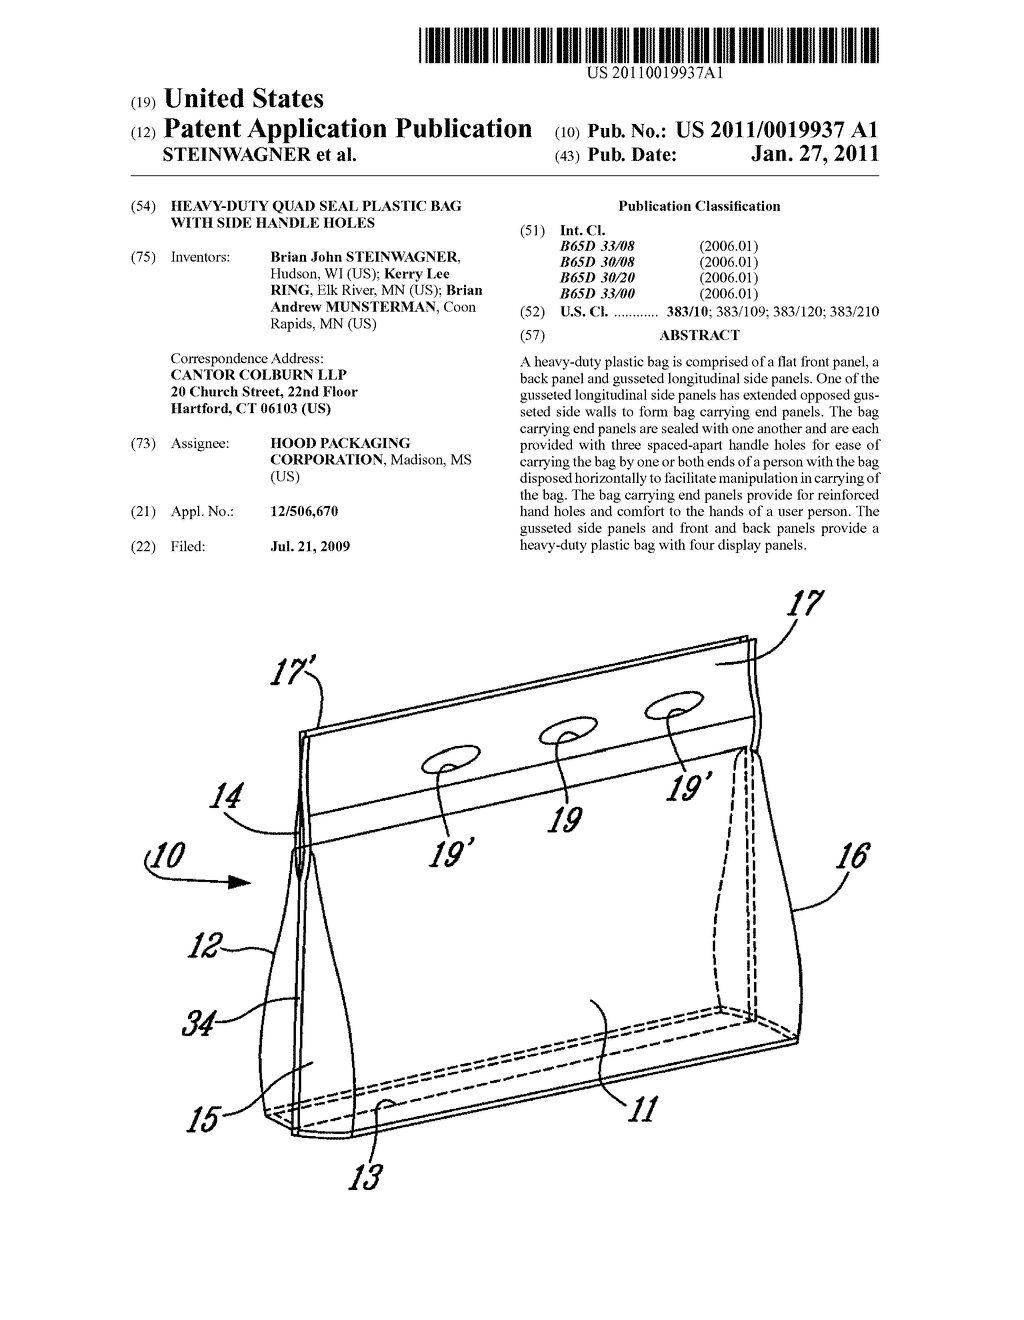 hight resolution of heavy duty quad seal plastic bag with side handle holes diagram schematic and image 01